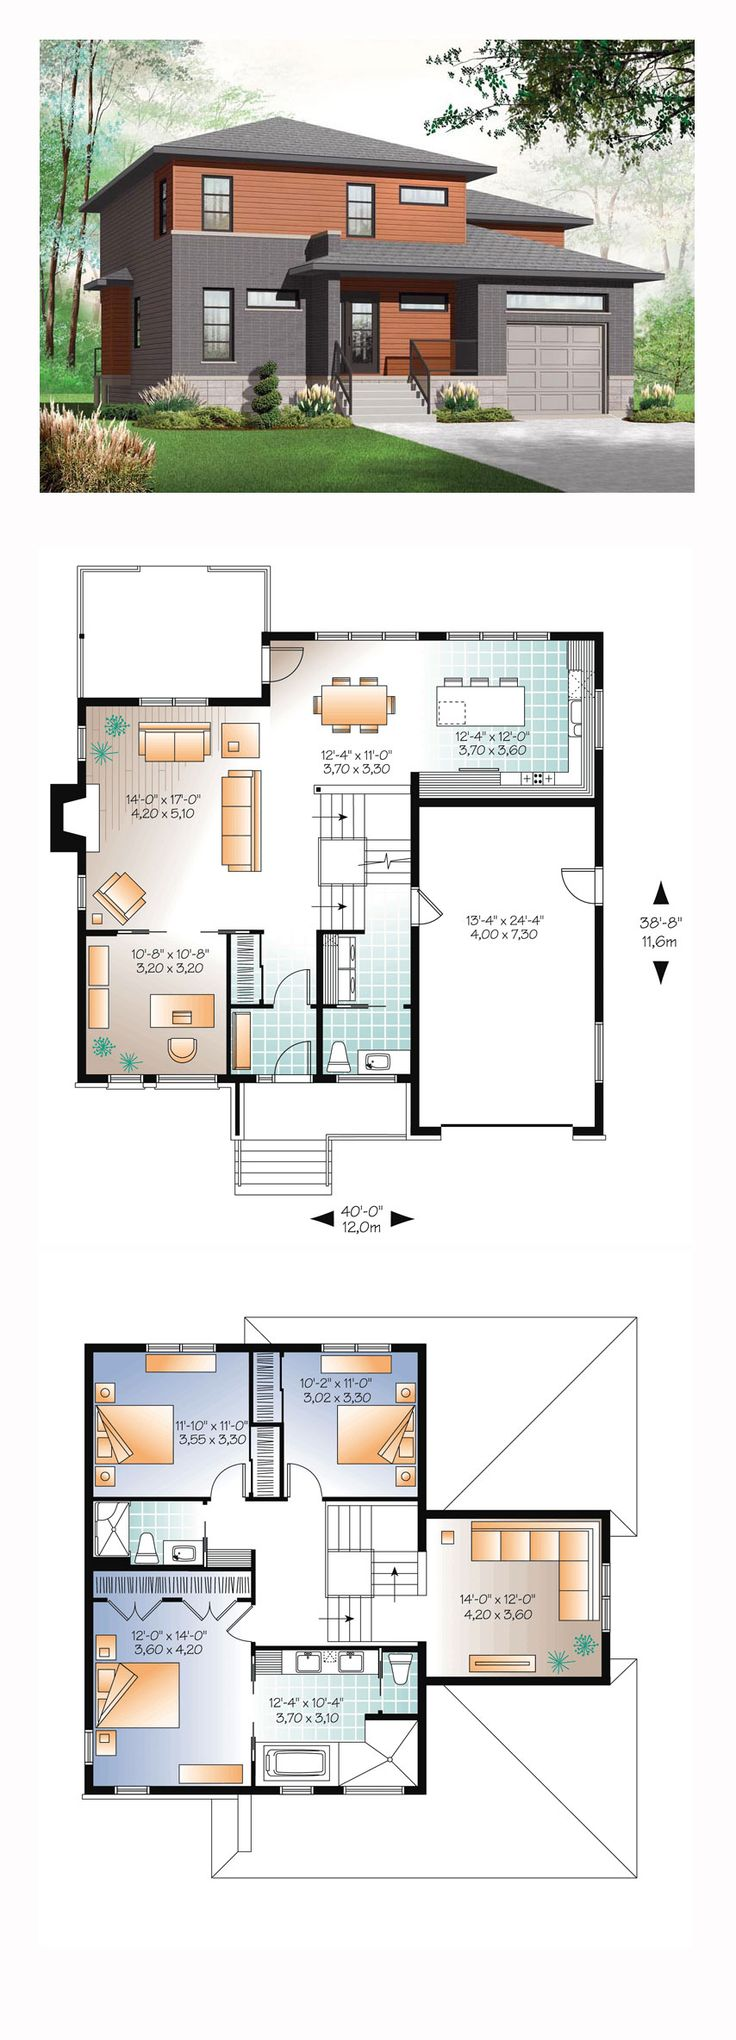 687 best plans for apartments houses images on pinterest Contemporary house blueprints